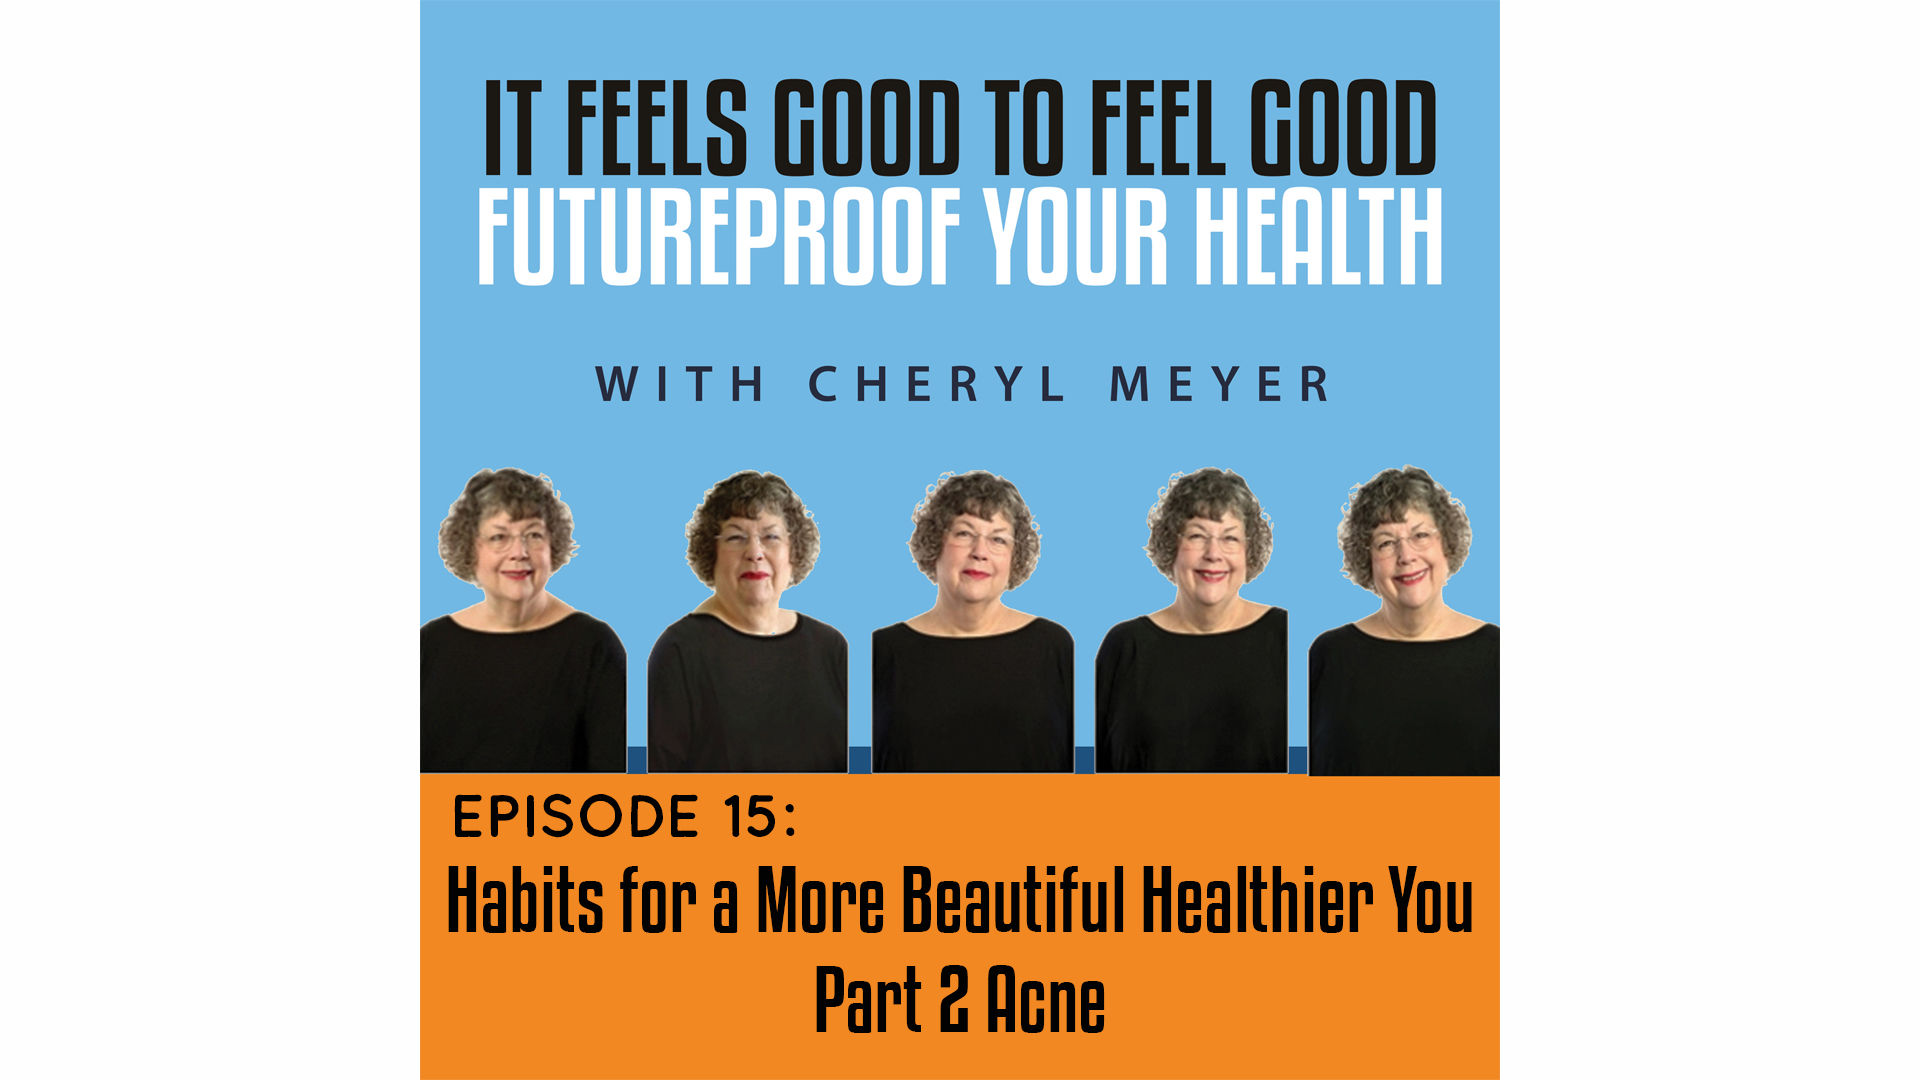 Episode 15 Habits for a More Beautiful Healthier You Part 2 Acne